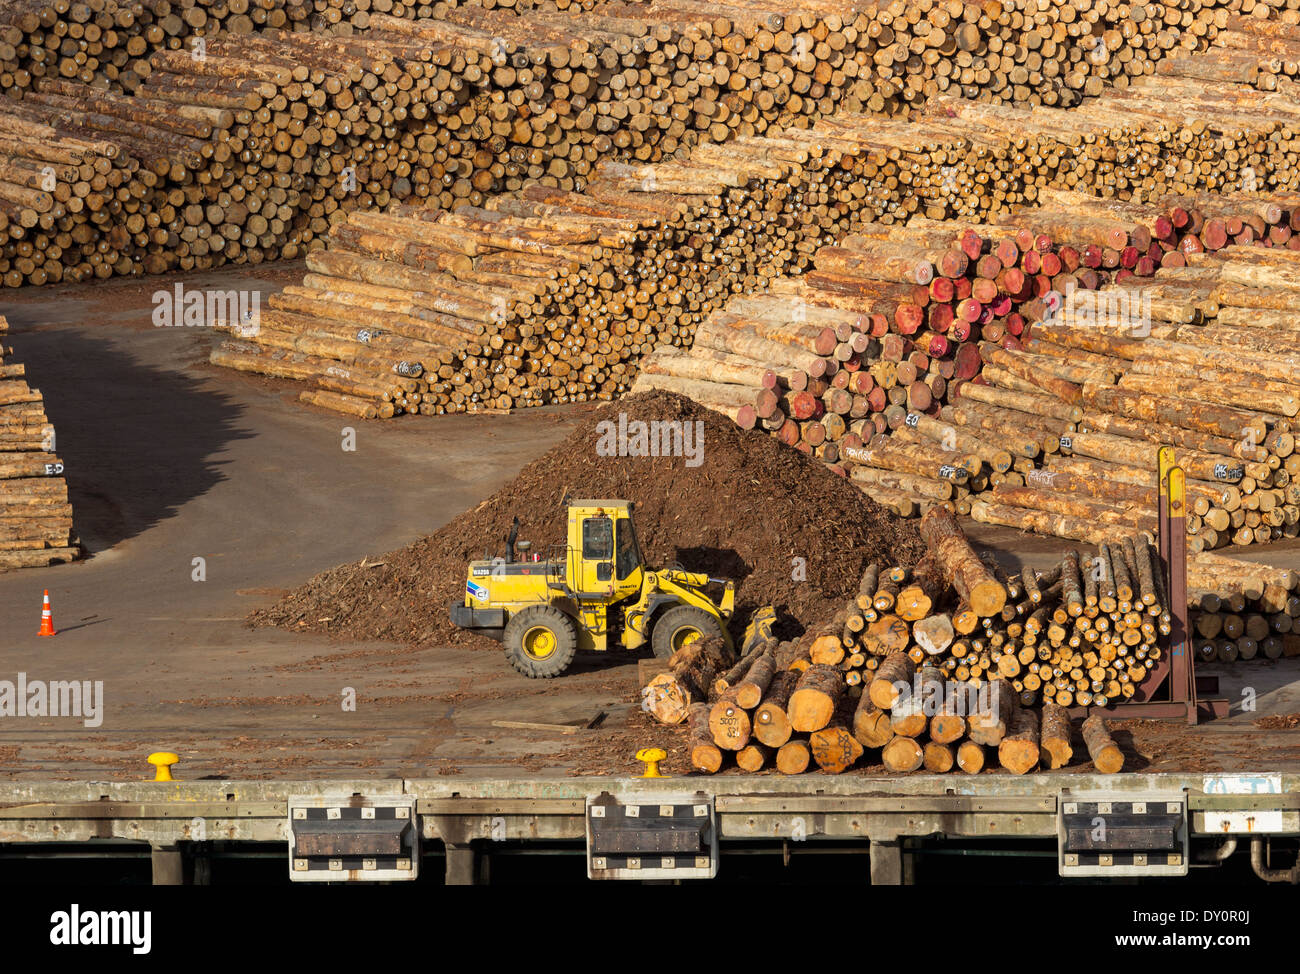 Lumber for export on the wharf - Stock Image